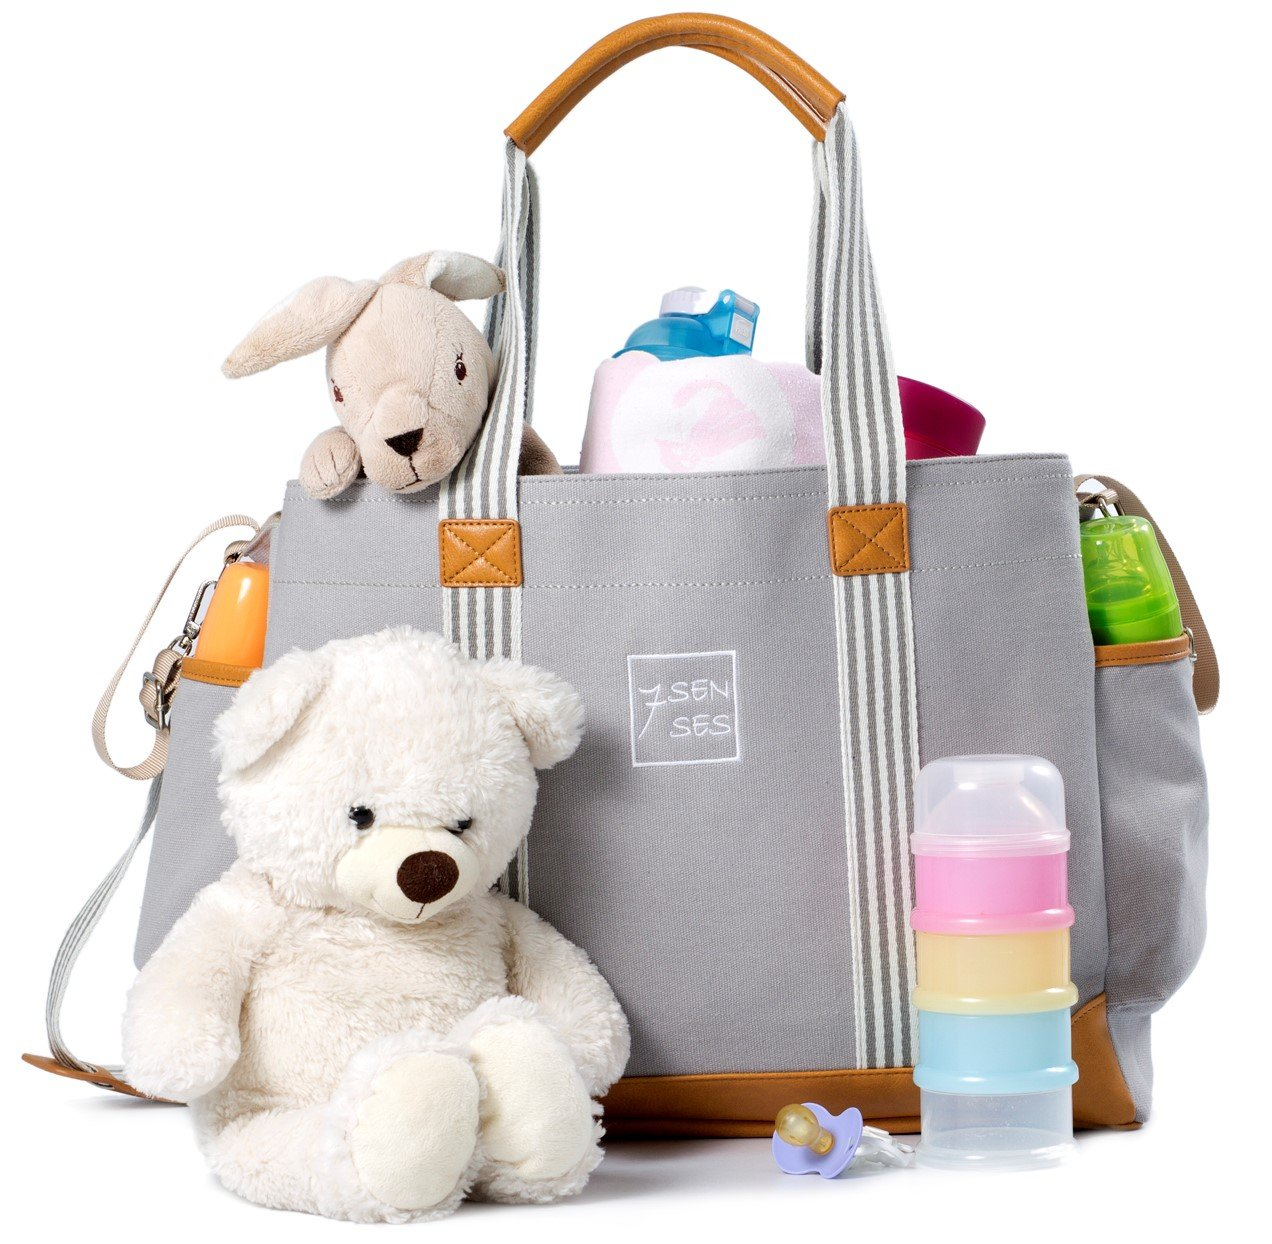 Diaper Bag for Girls and Boys - Large Capacity Baby Bag - Best Baby Shower Gift by 7Senses